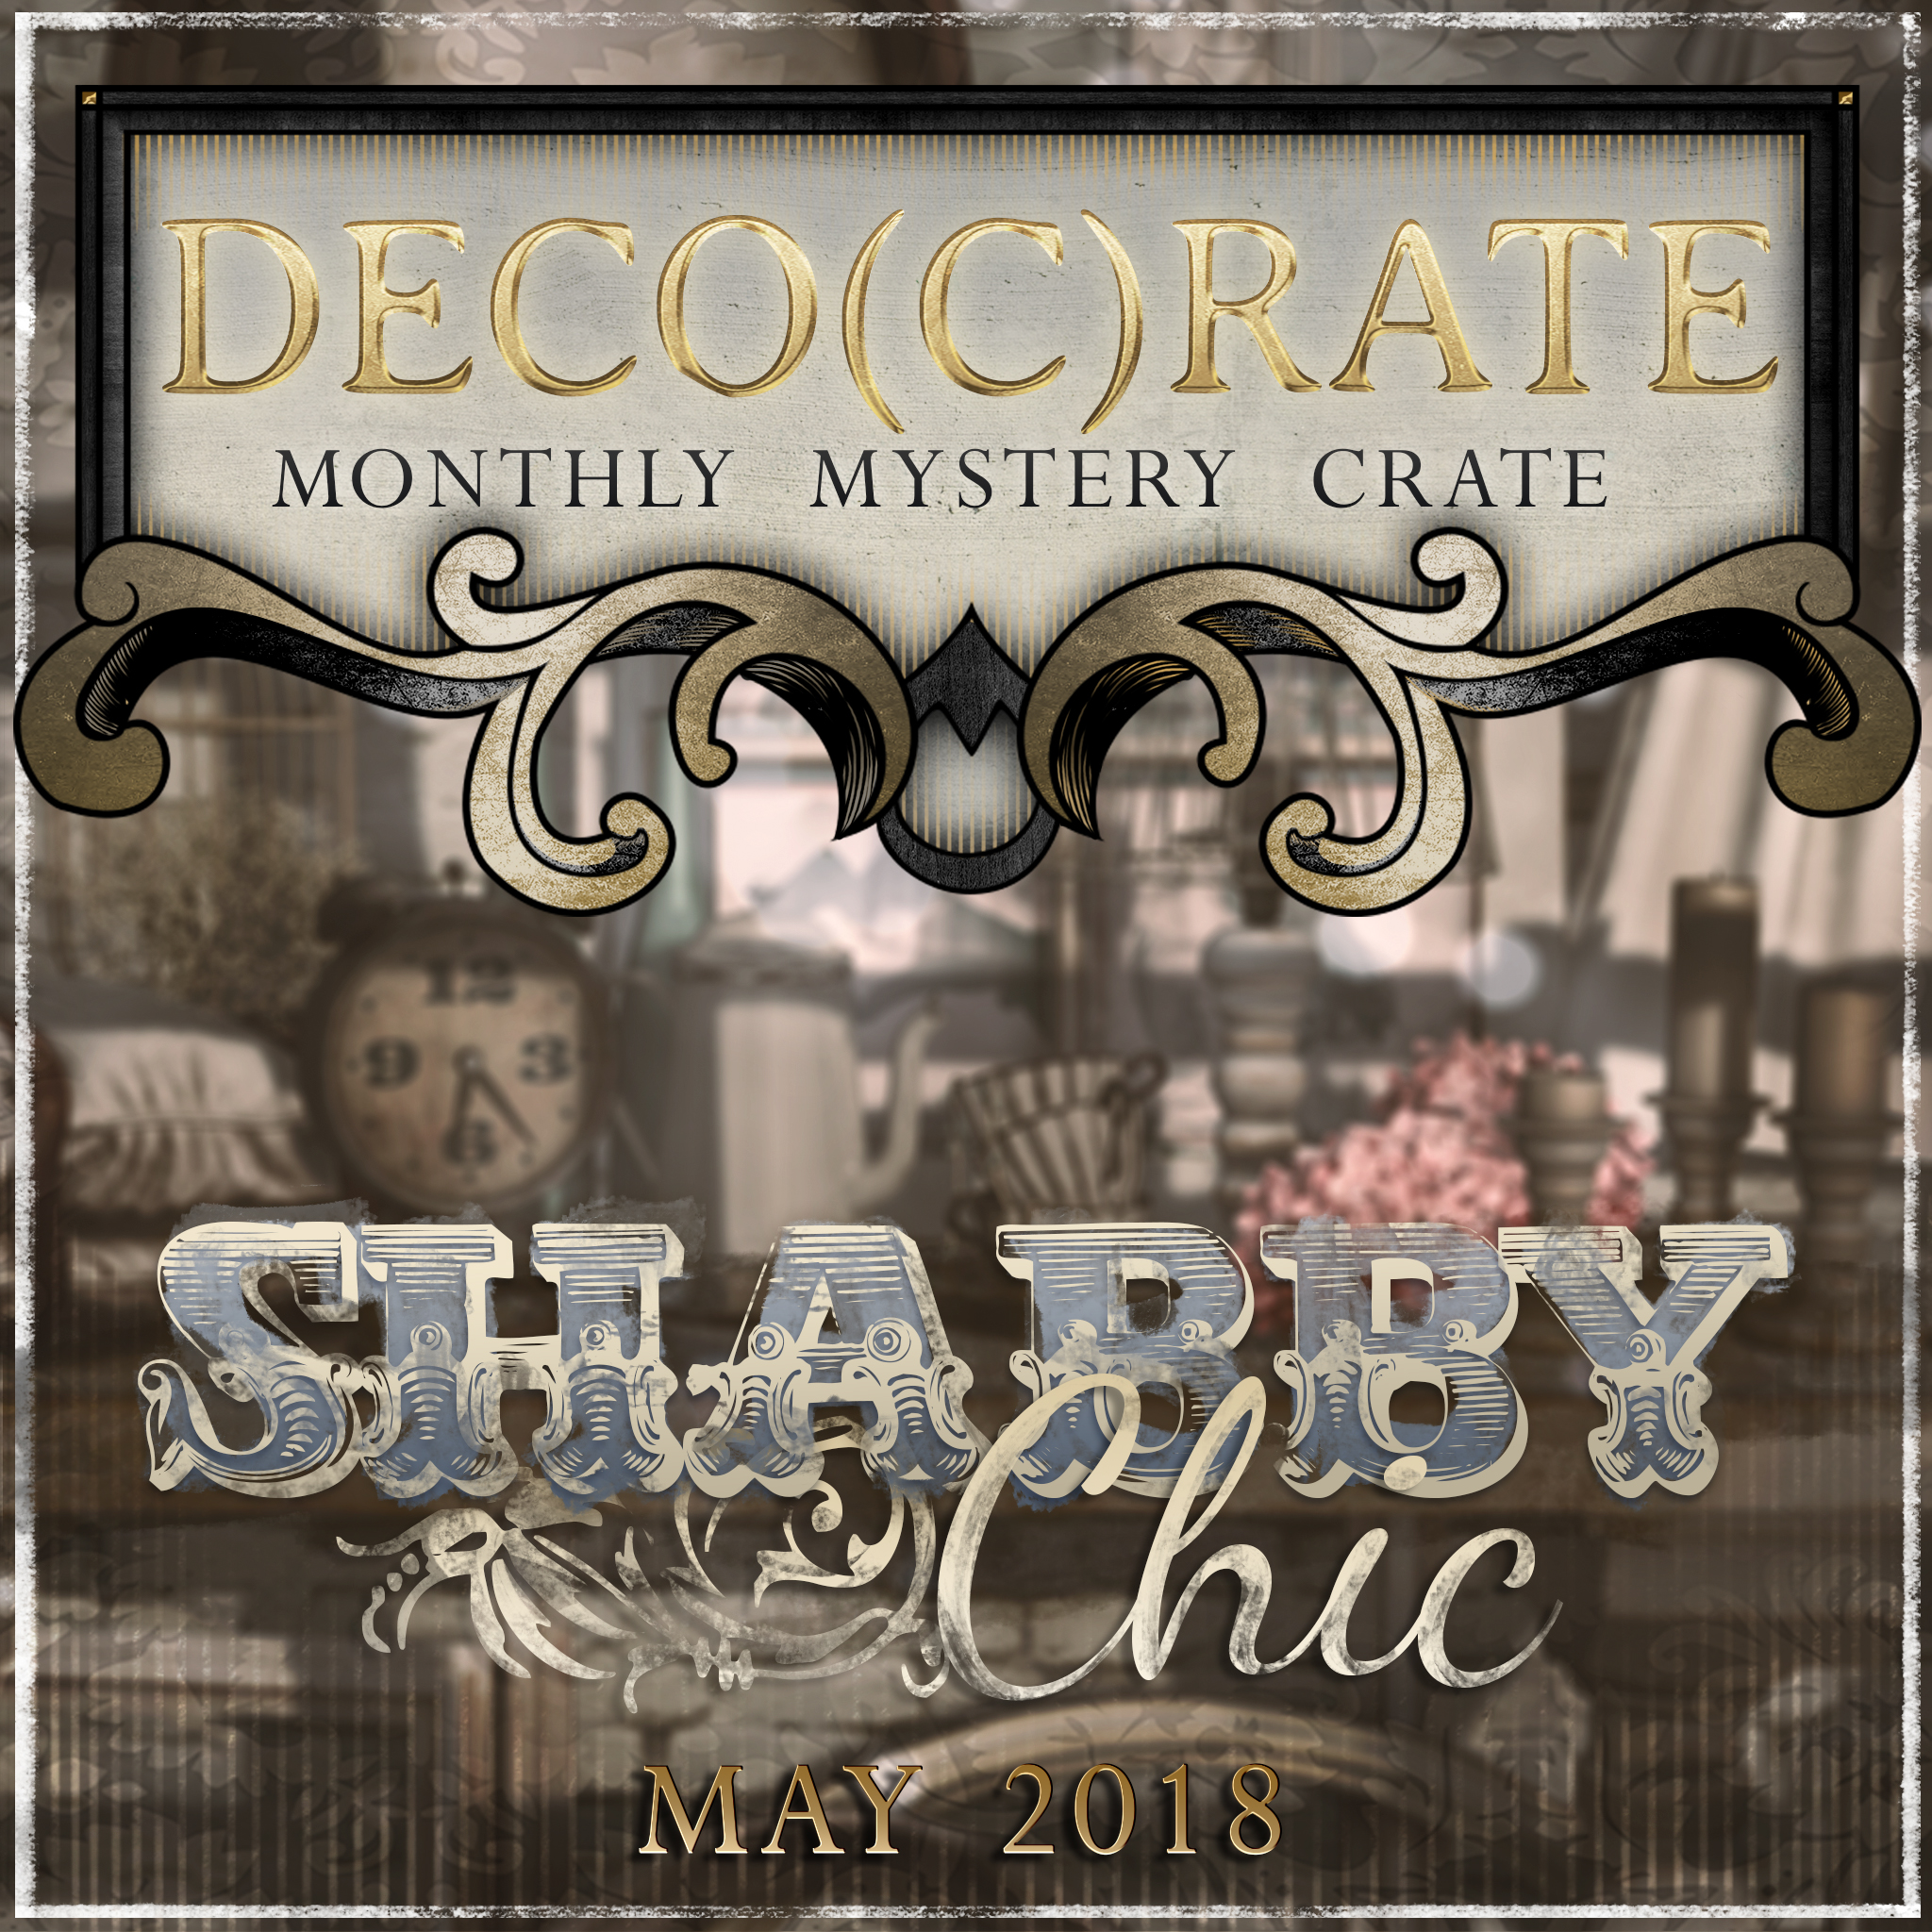 Deco(c)crate is (shabby) Chic!